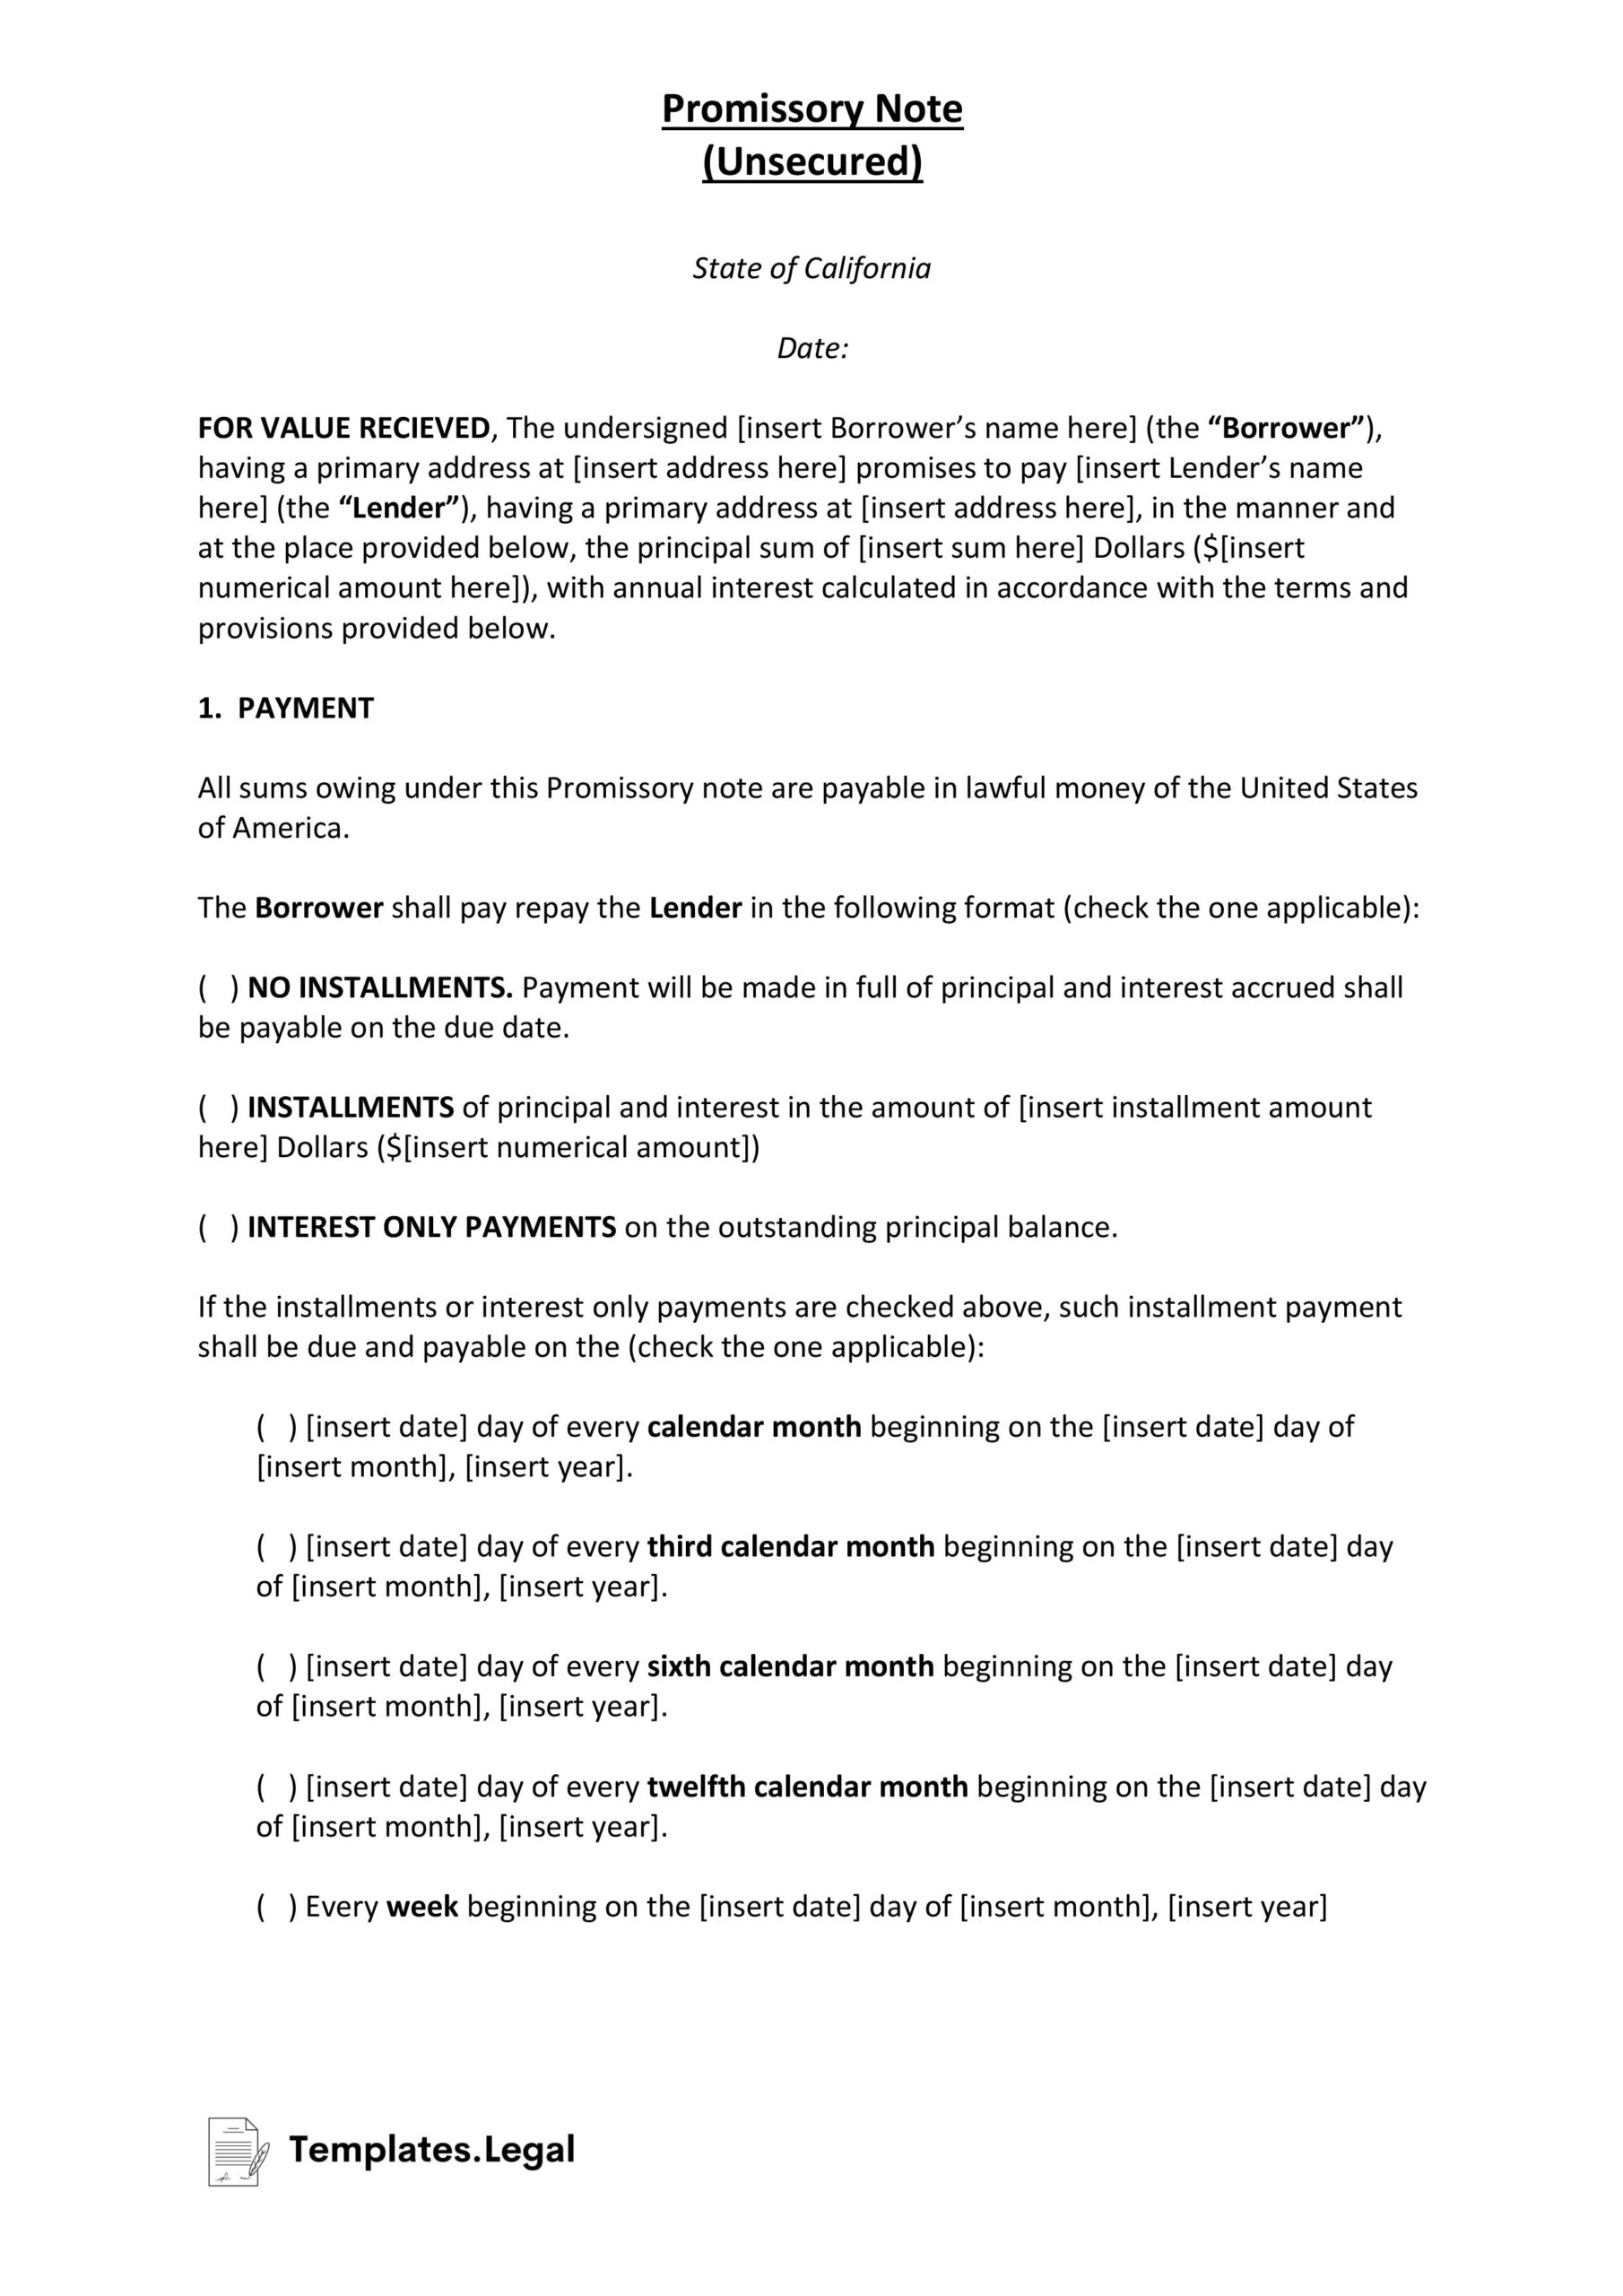 California Unsecured Promissory Note - Templates.Legal